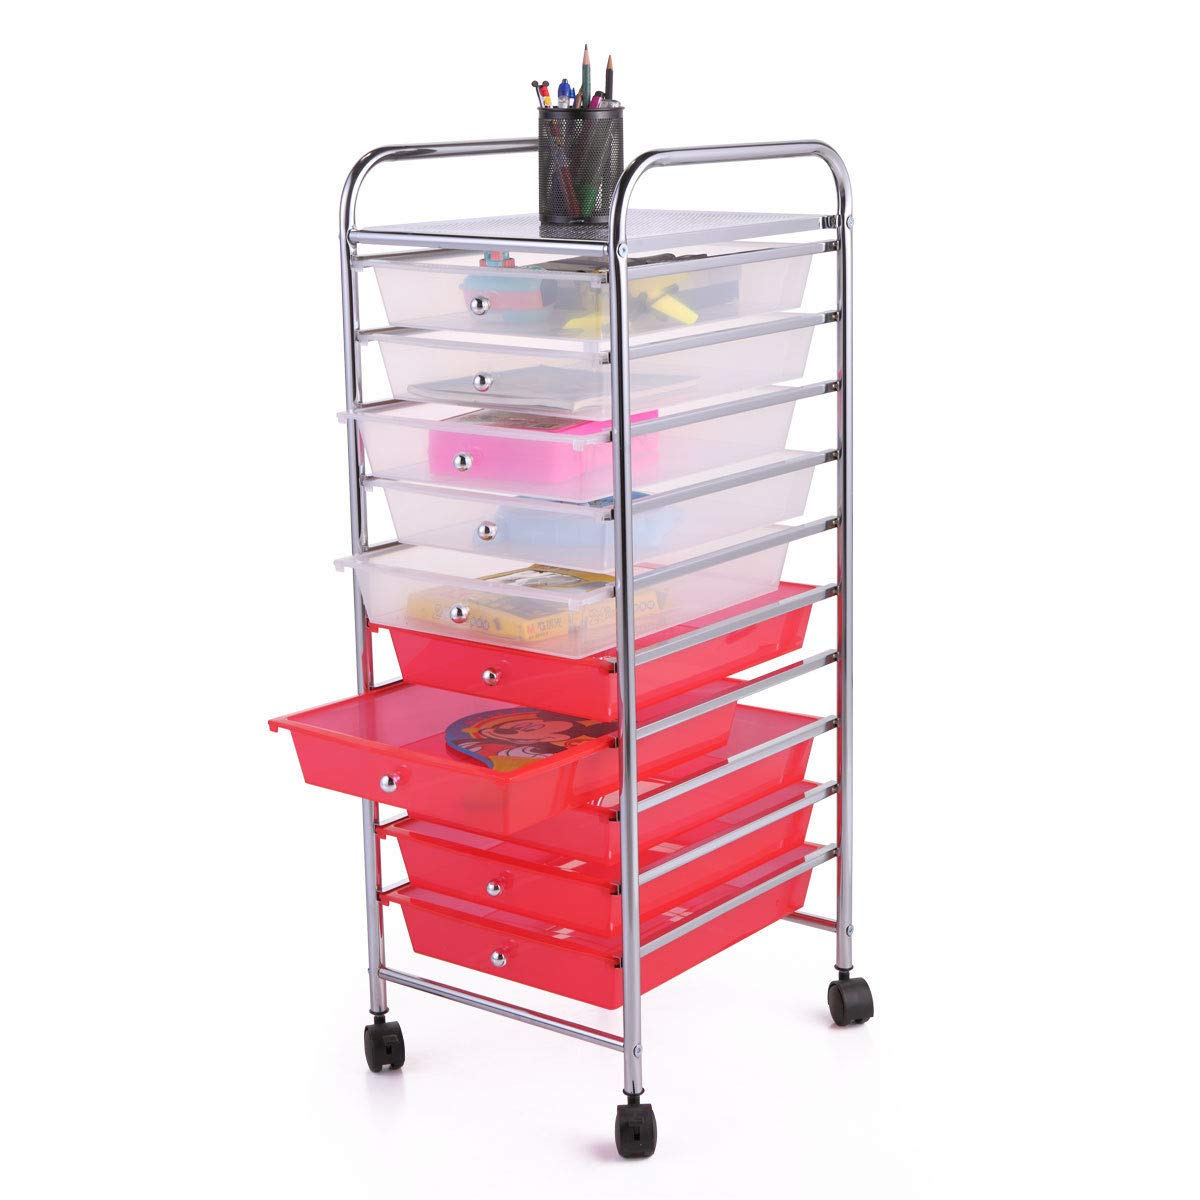 Rolling Storage Cart Mobile Organizer w/ 10 Removable PP Drawers Multiple Colors